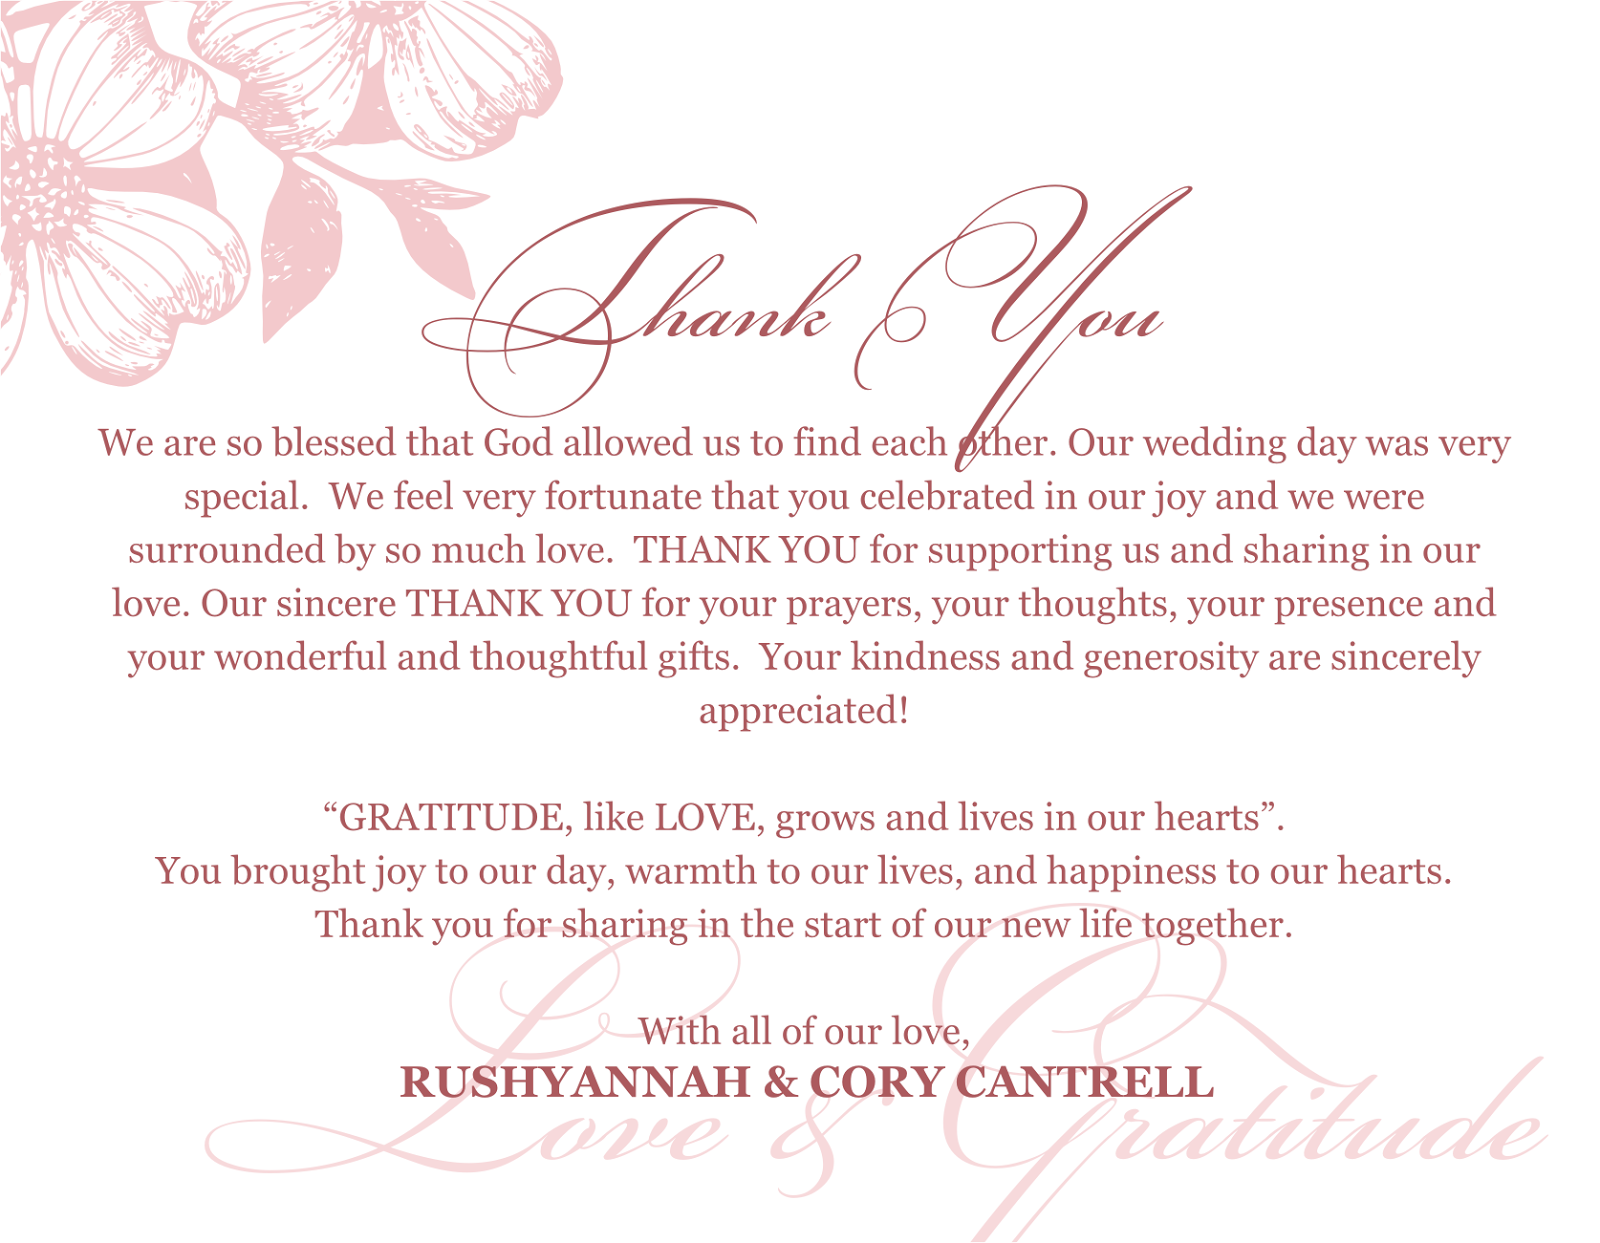 weddingthankyoucardsayingspng Thank you notes – What to Write in Wedding Thank You Cards Sample